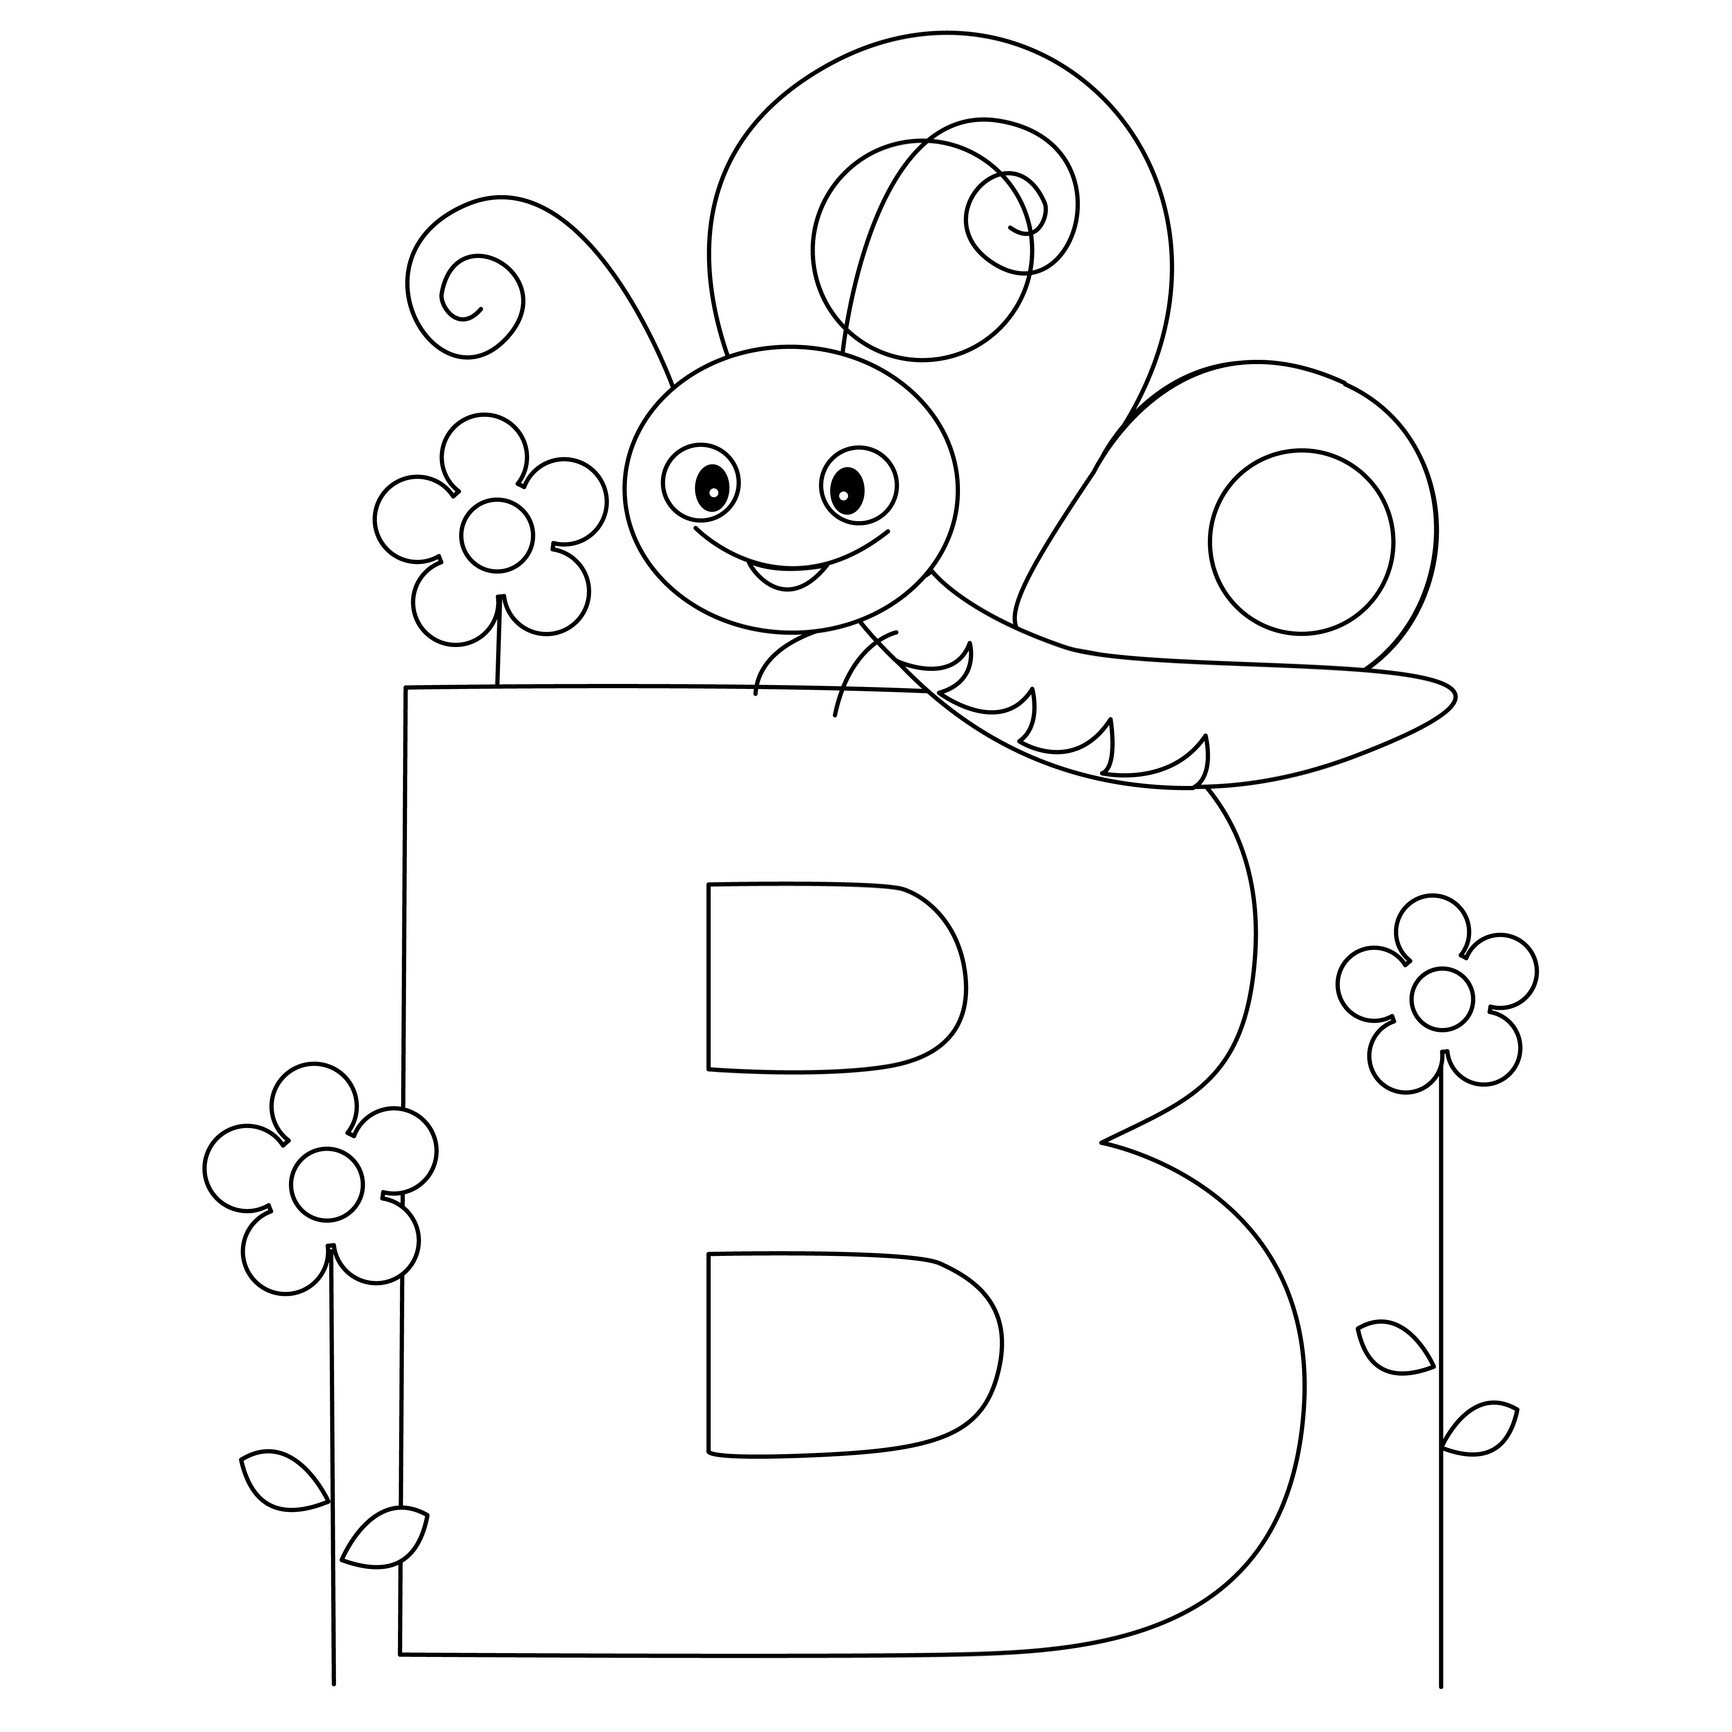 Alphabet Printable Coloring Pages | Presidencycollegekolkata - Free Printable Preschool Alphabet Coloring Pages